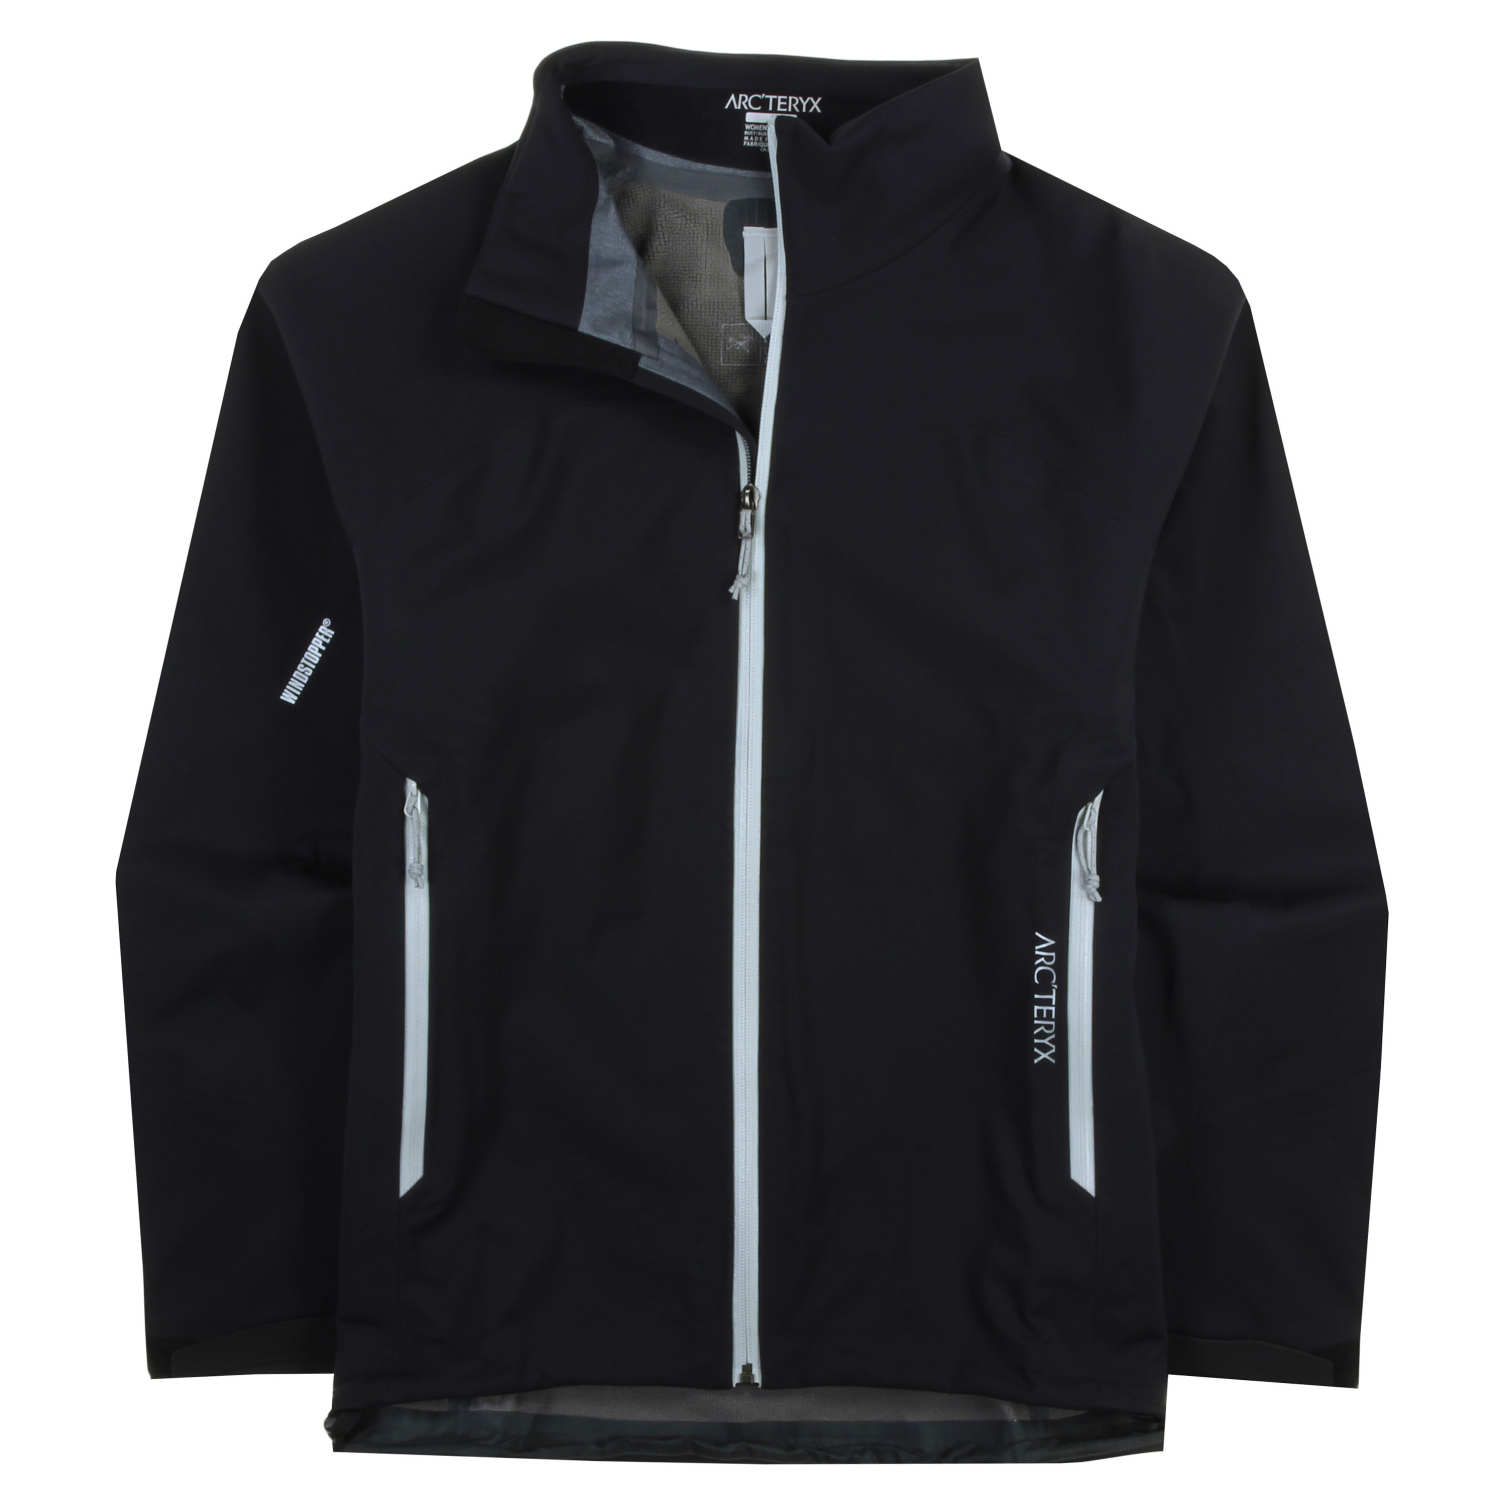 Firebee AR Jacket Women's